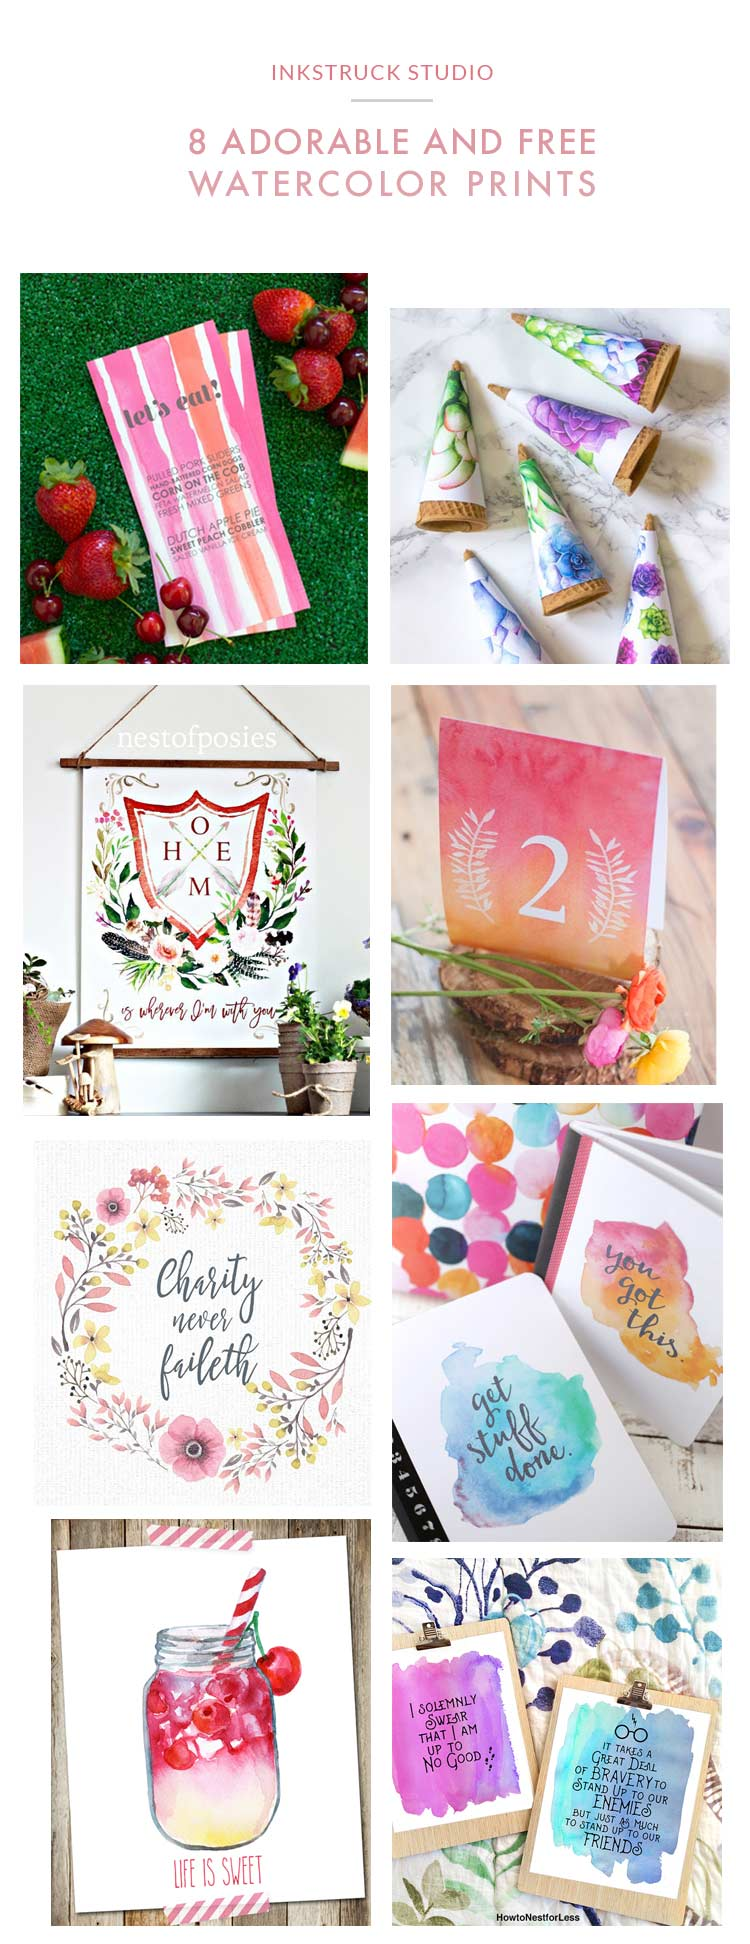 8 swoon-worthy free watercolor prints | Inkstruck Studio